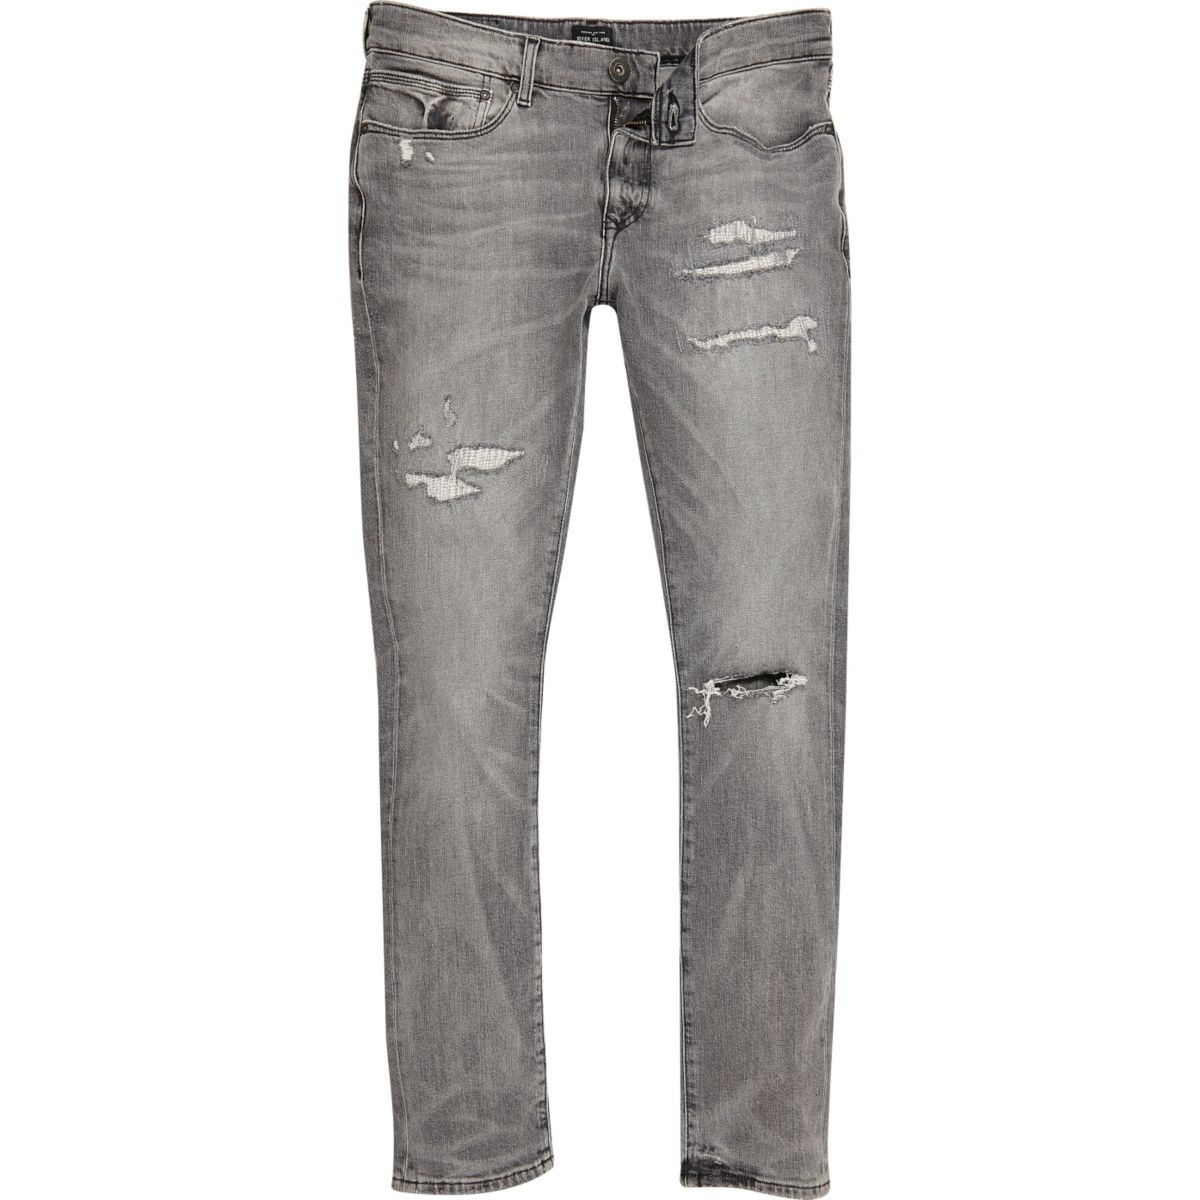 Grey distressed Danny super skinny jeans